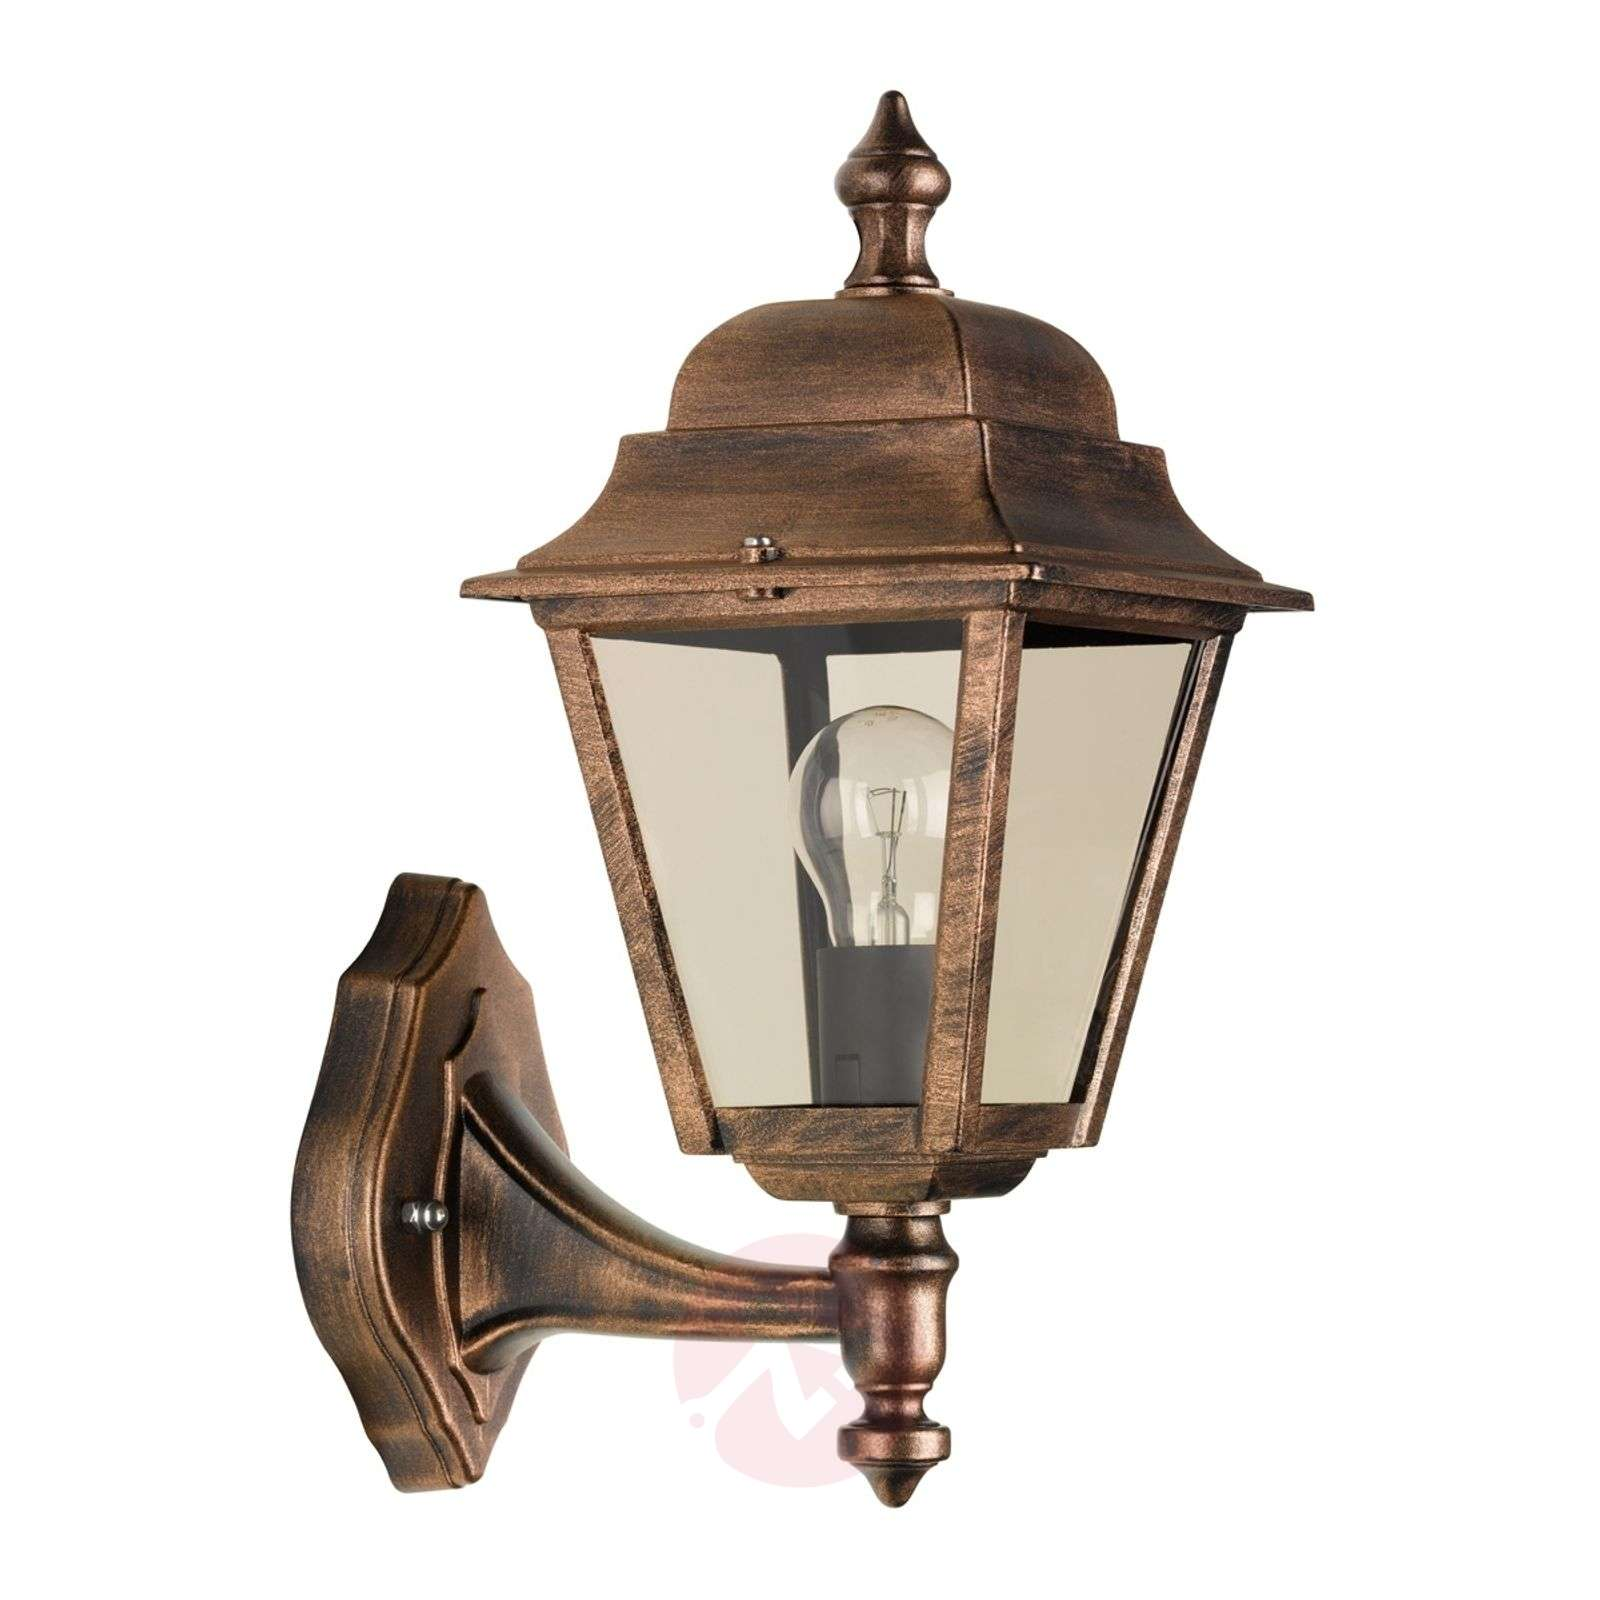 Outdoor wall light Toulouse, upright-6068035-01